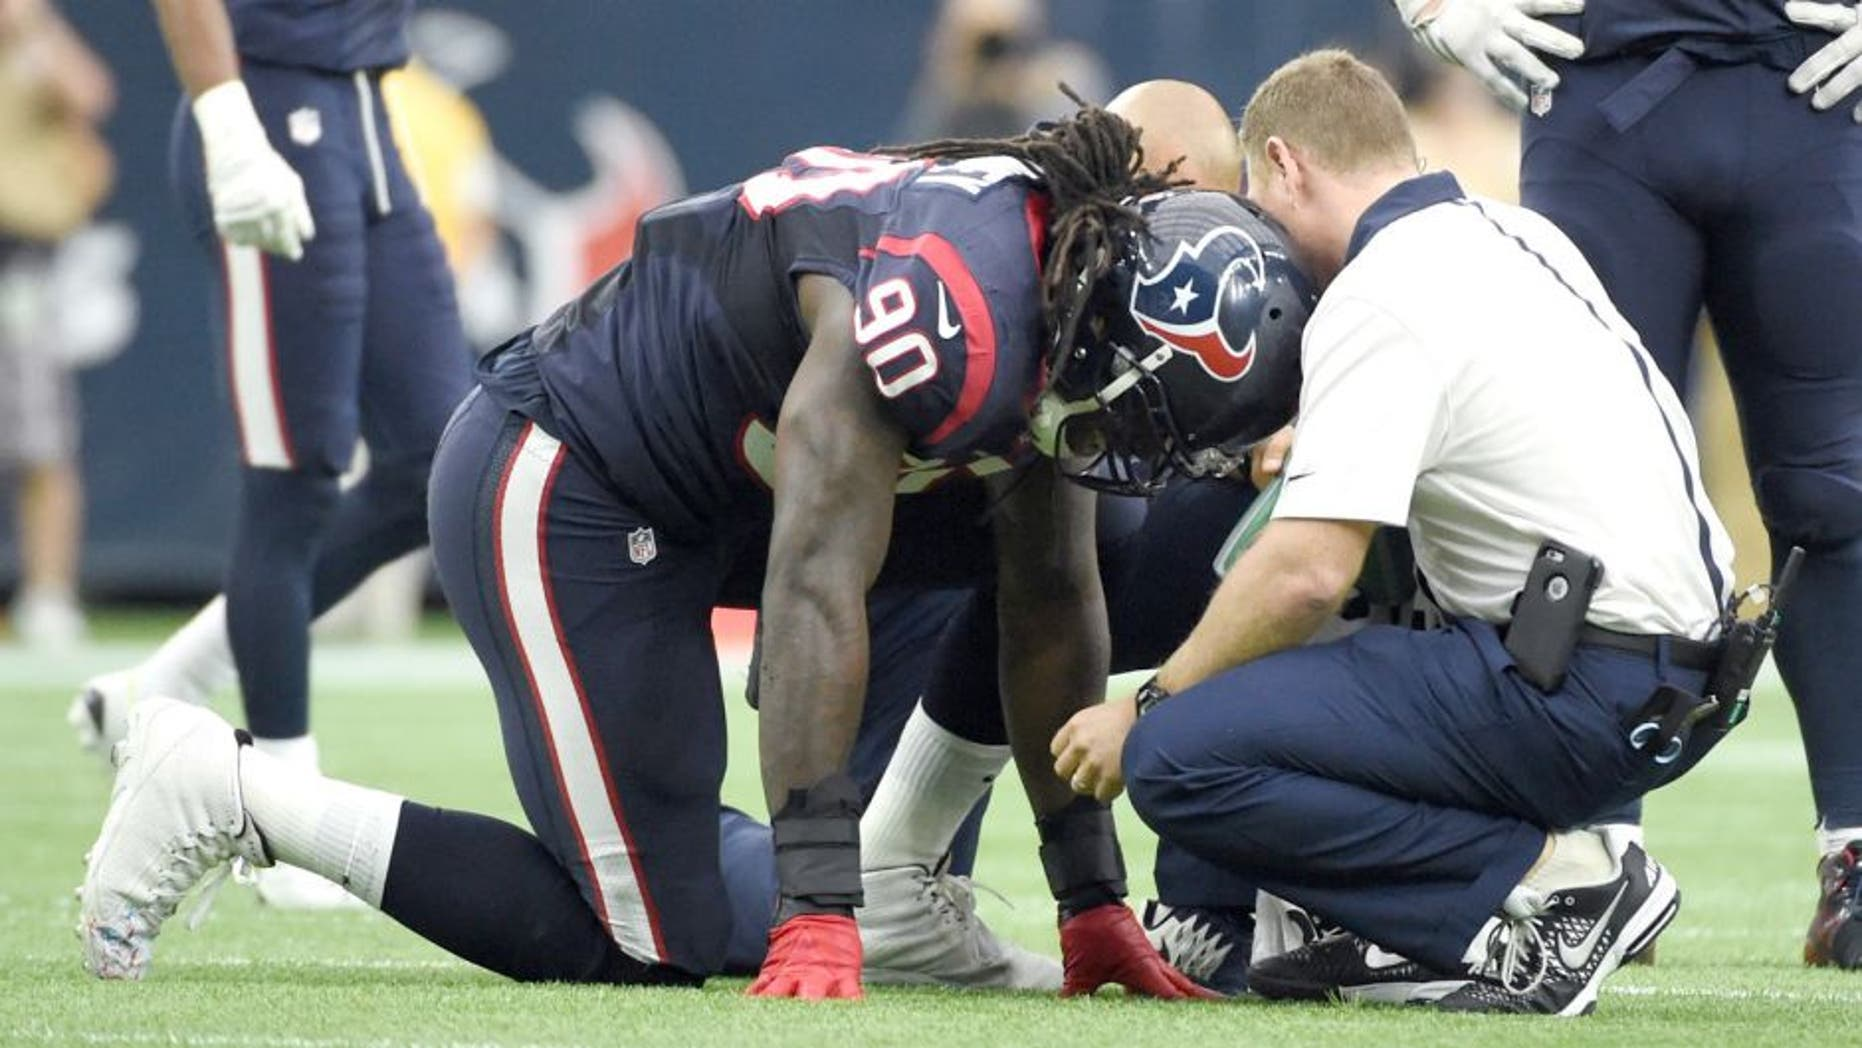 Houston Texans outside linebacker Jadeveon Clowney (90) is attended to after he was injured during the first half of an NFL football game against the Tennessee Titans, Sunday, Nov. 1, 2015, in Houston. (AP Photo/Eric Christian Smith)